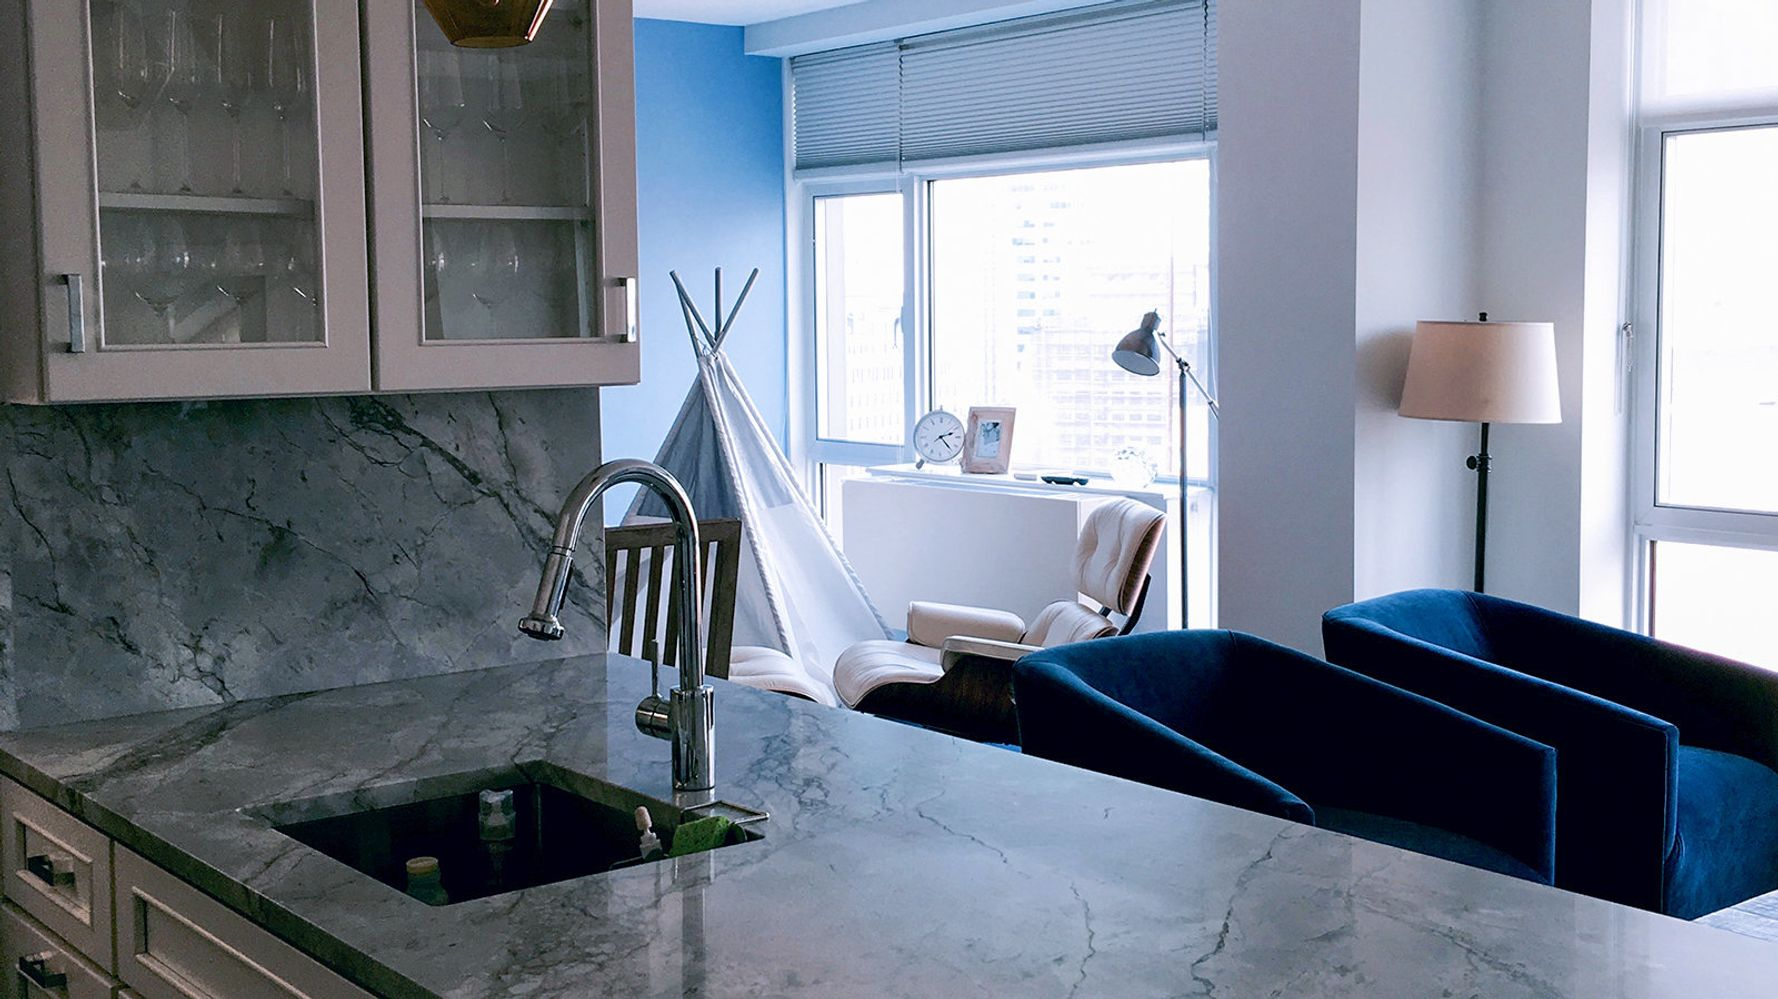 4 Lessons Learned From Renovating Our New York City Apartment